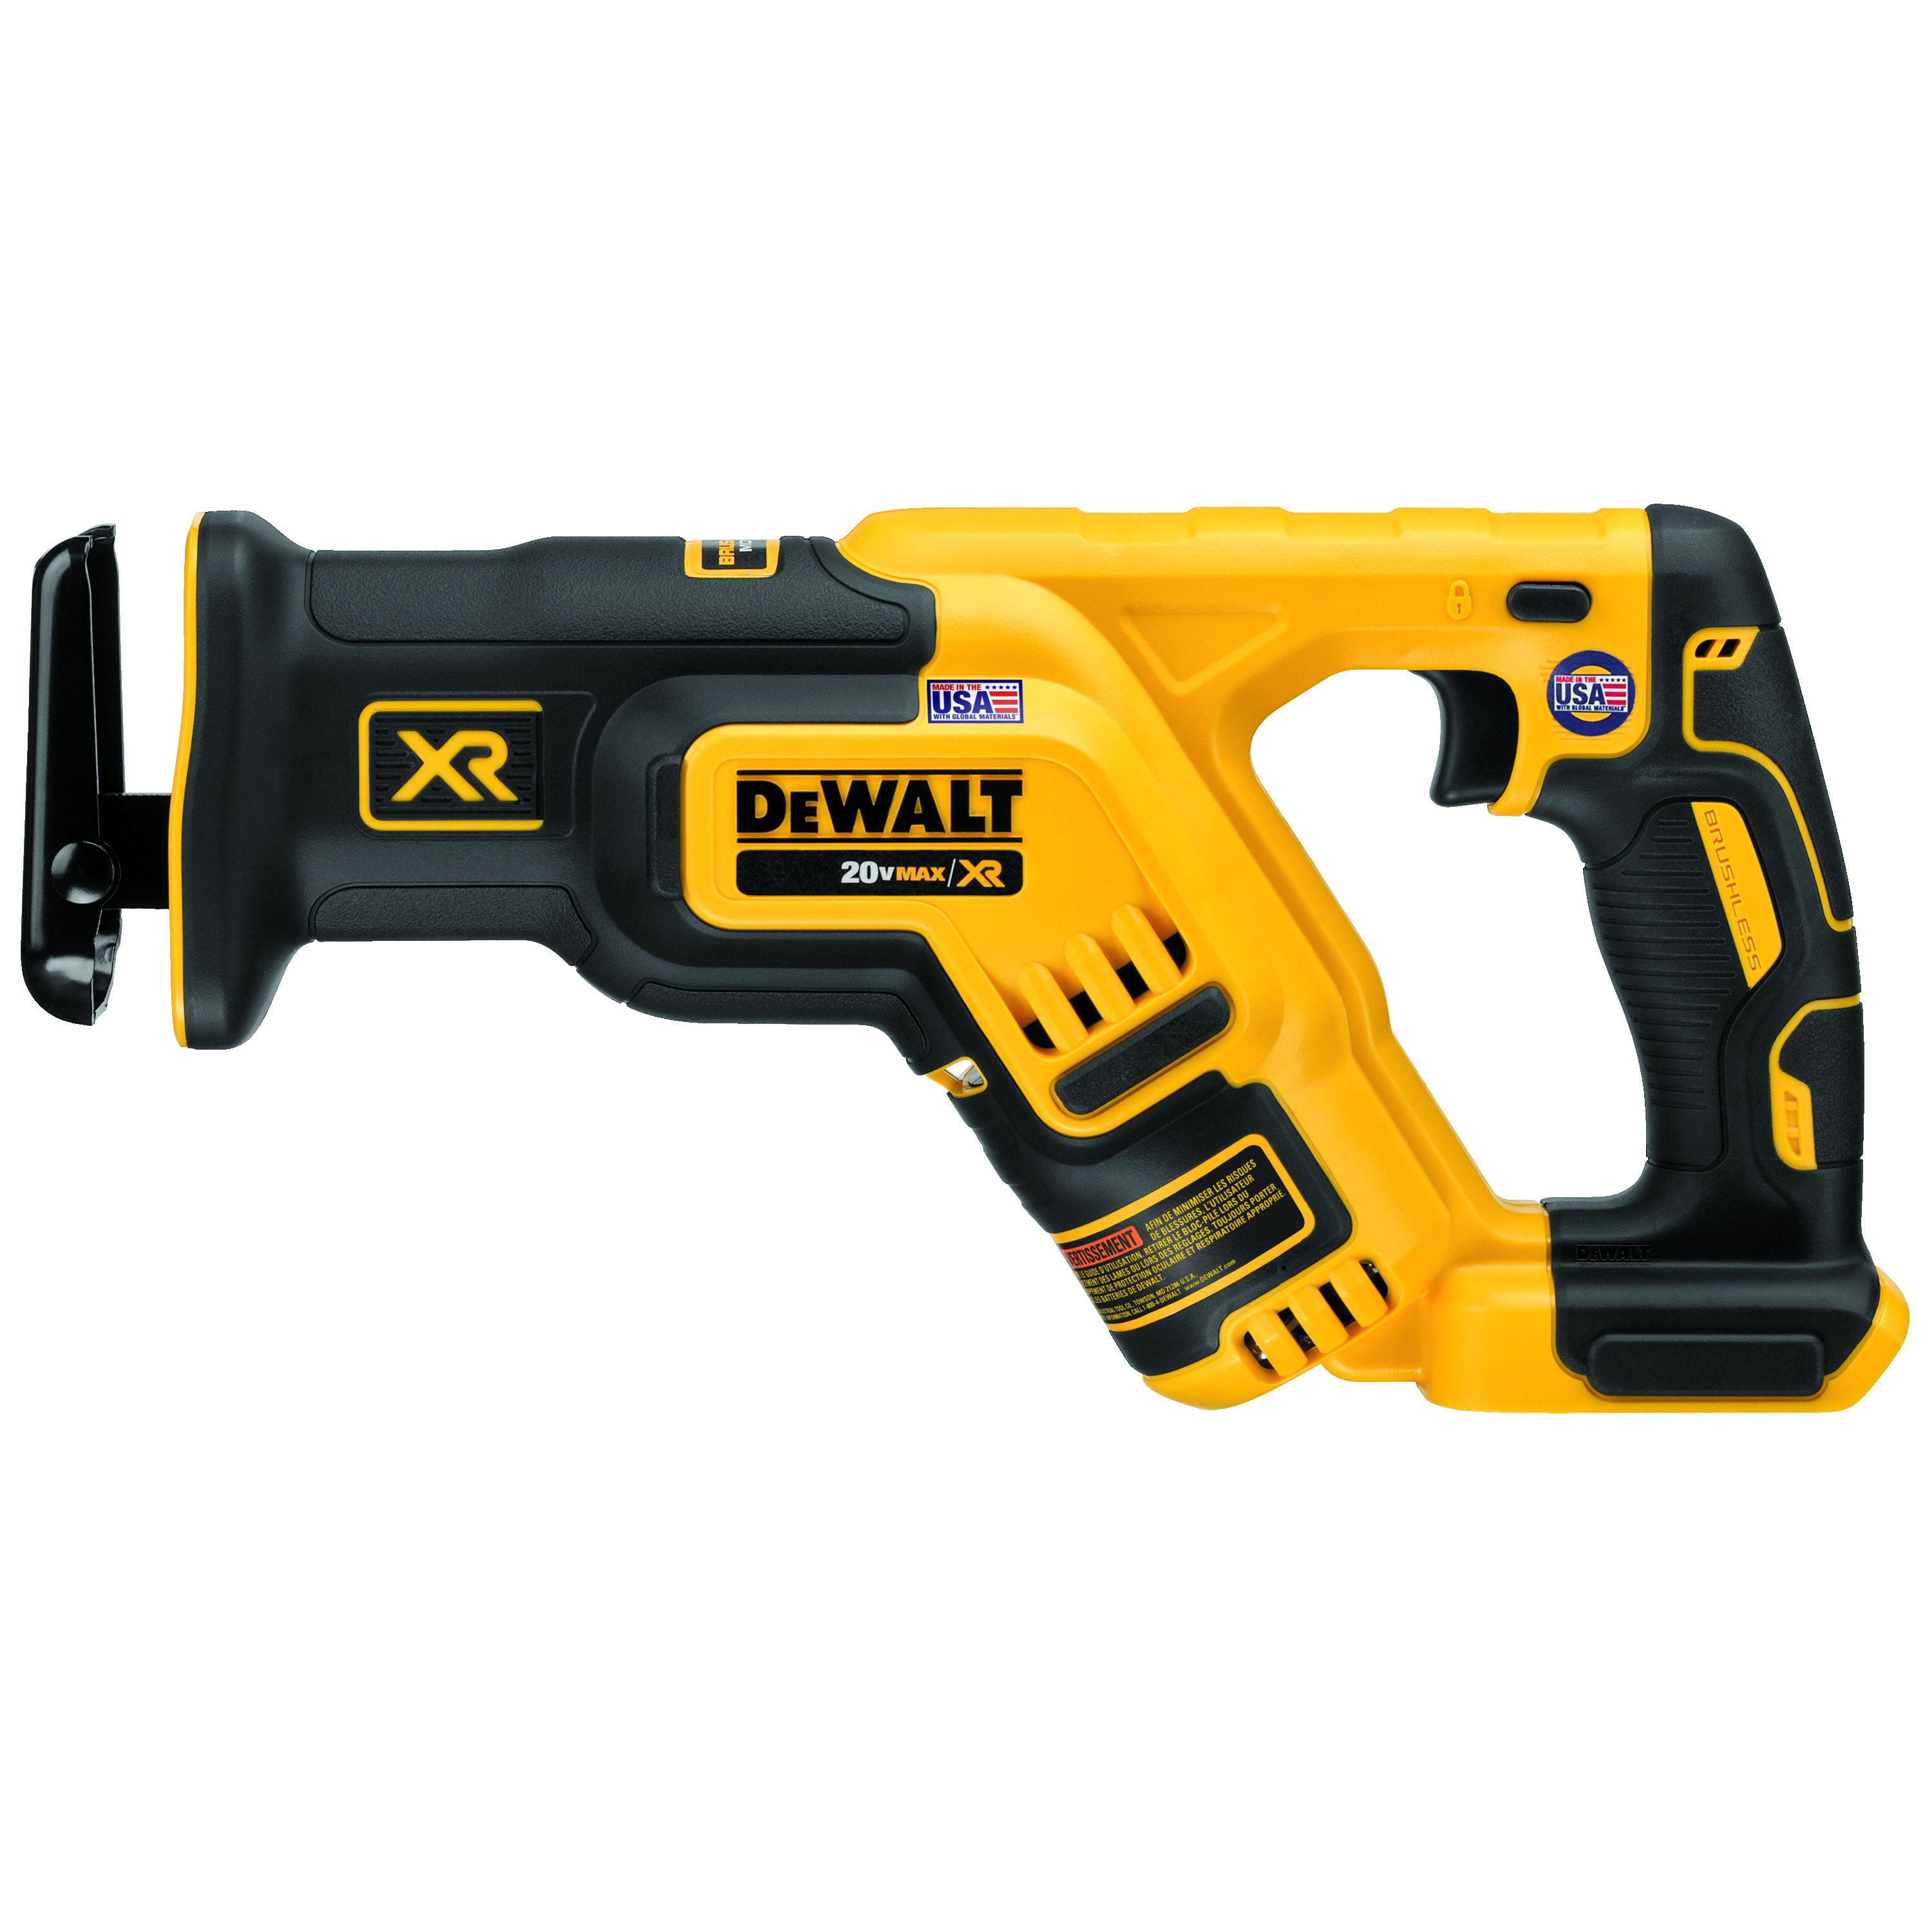 DeWALT® DCS367B Brushless Compact Cordless Reciprocating Saw, 1-1/8 in L Stroke, 0 to 2900 spm, Flush Cut, 20 VDC